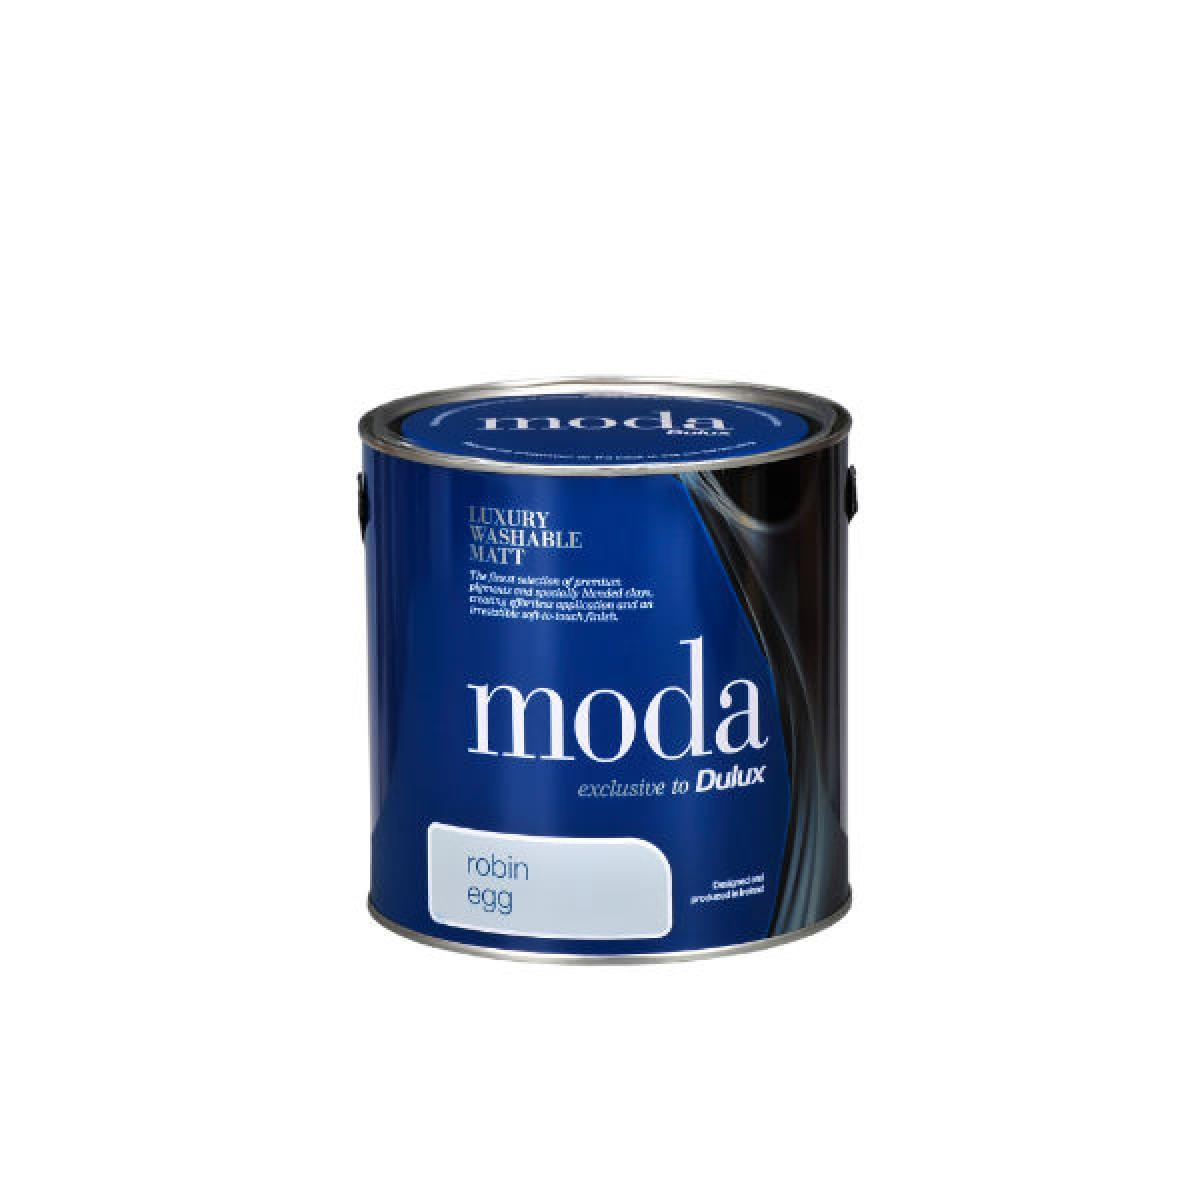 dulux moda matt emulsion paint 5l. Black Bedroom Furniture Sets. Home Design Ideas